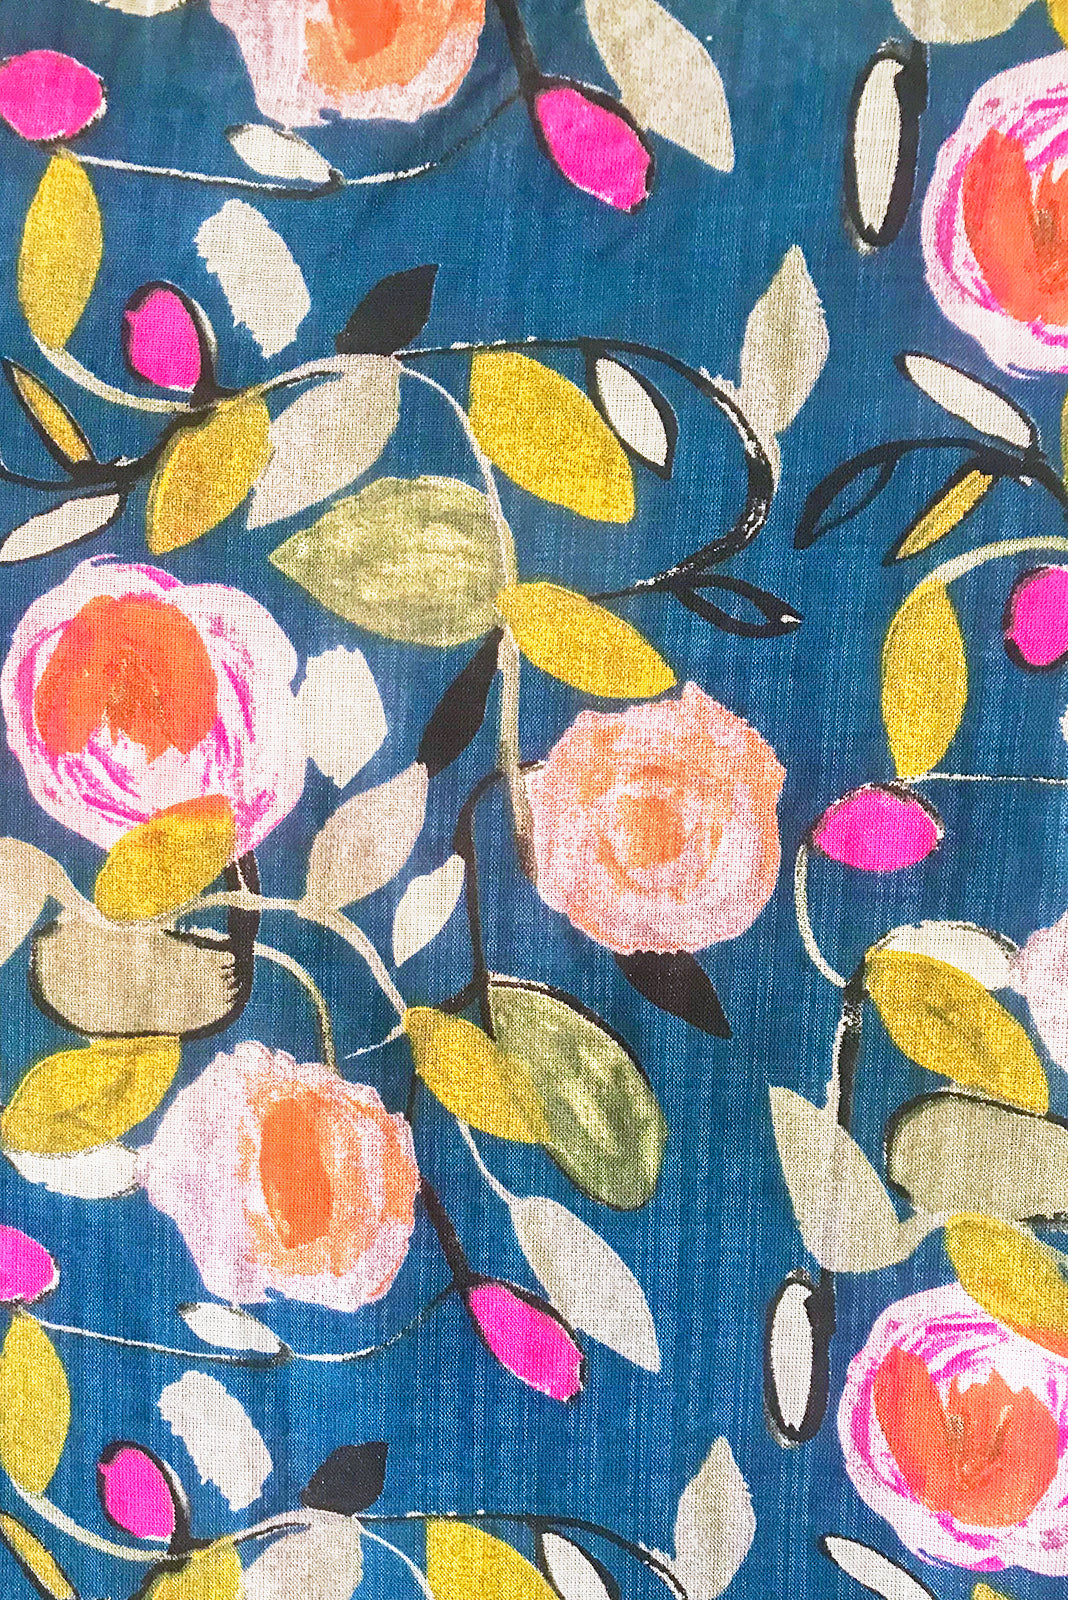 Fabric Swatch of Lucky Lulu Polka Rose Maxi Dress features navy/teal base with multicoloured rose design featuring fuchsia, peach, gold, mint and khaki in woven 100% cotton.